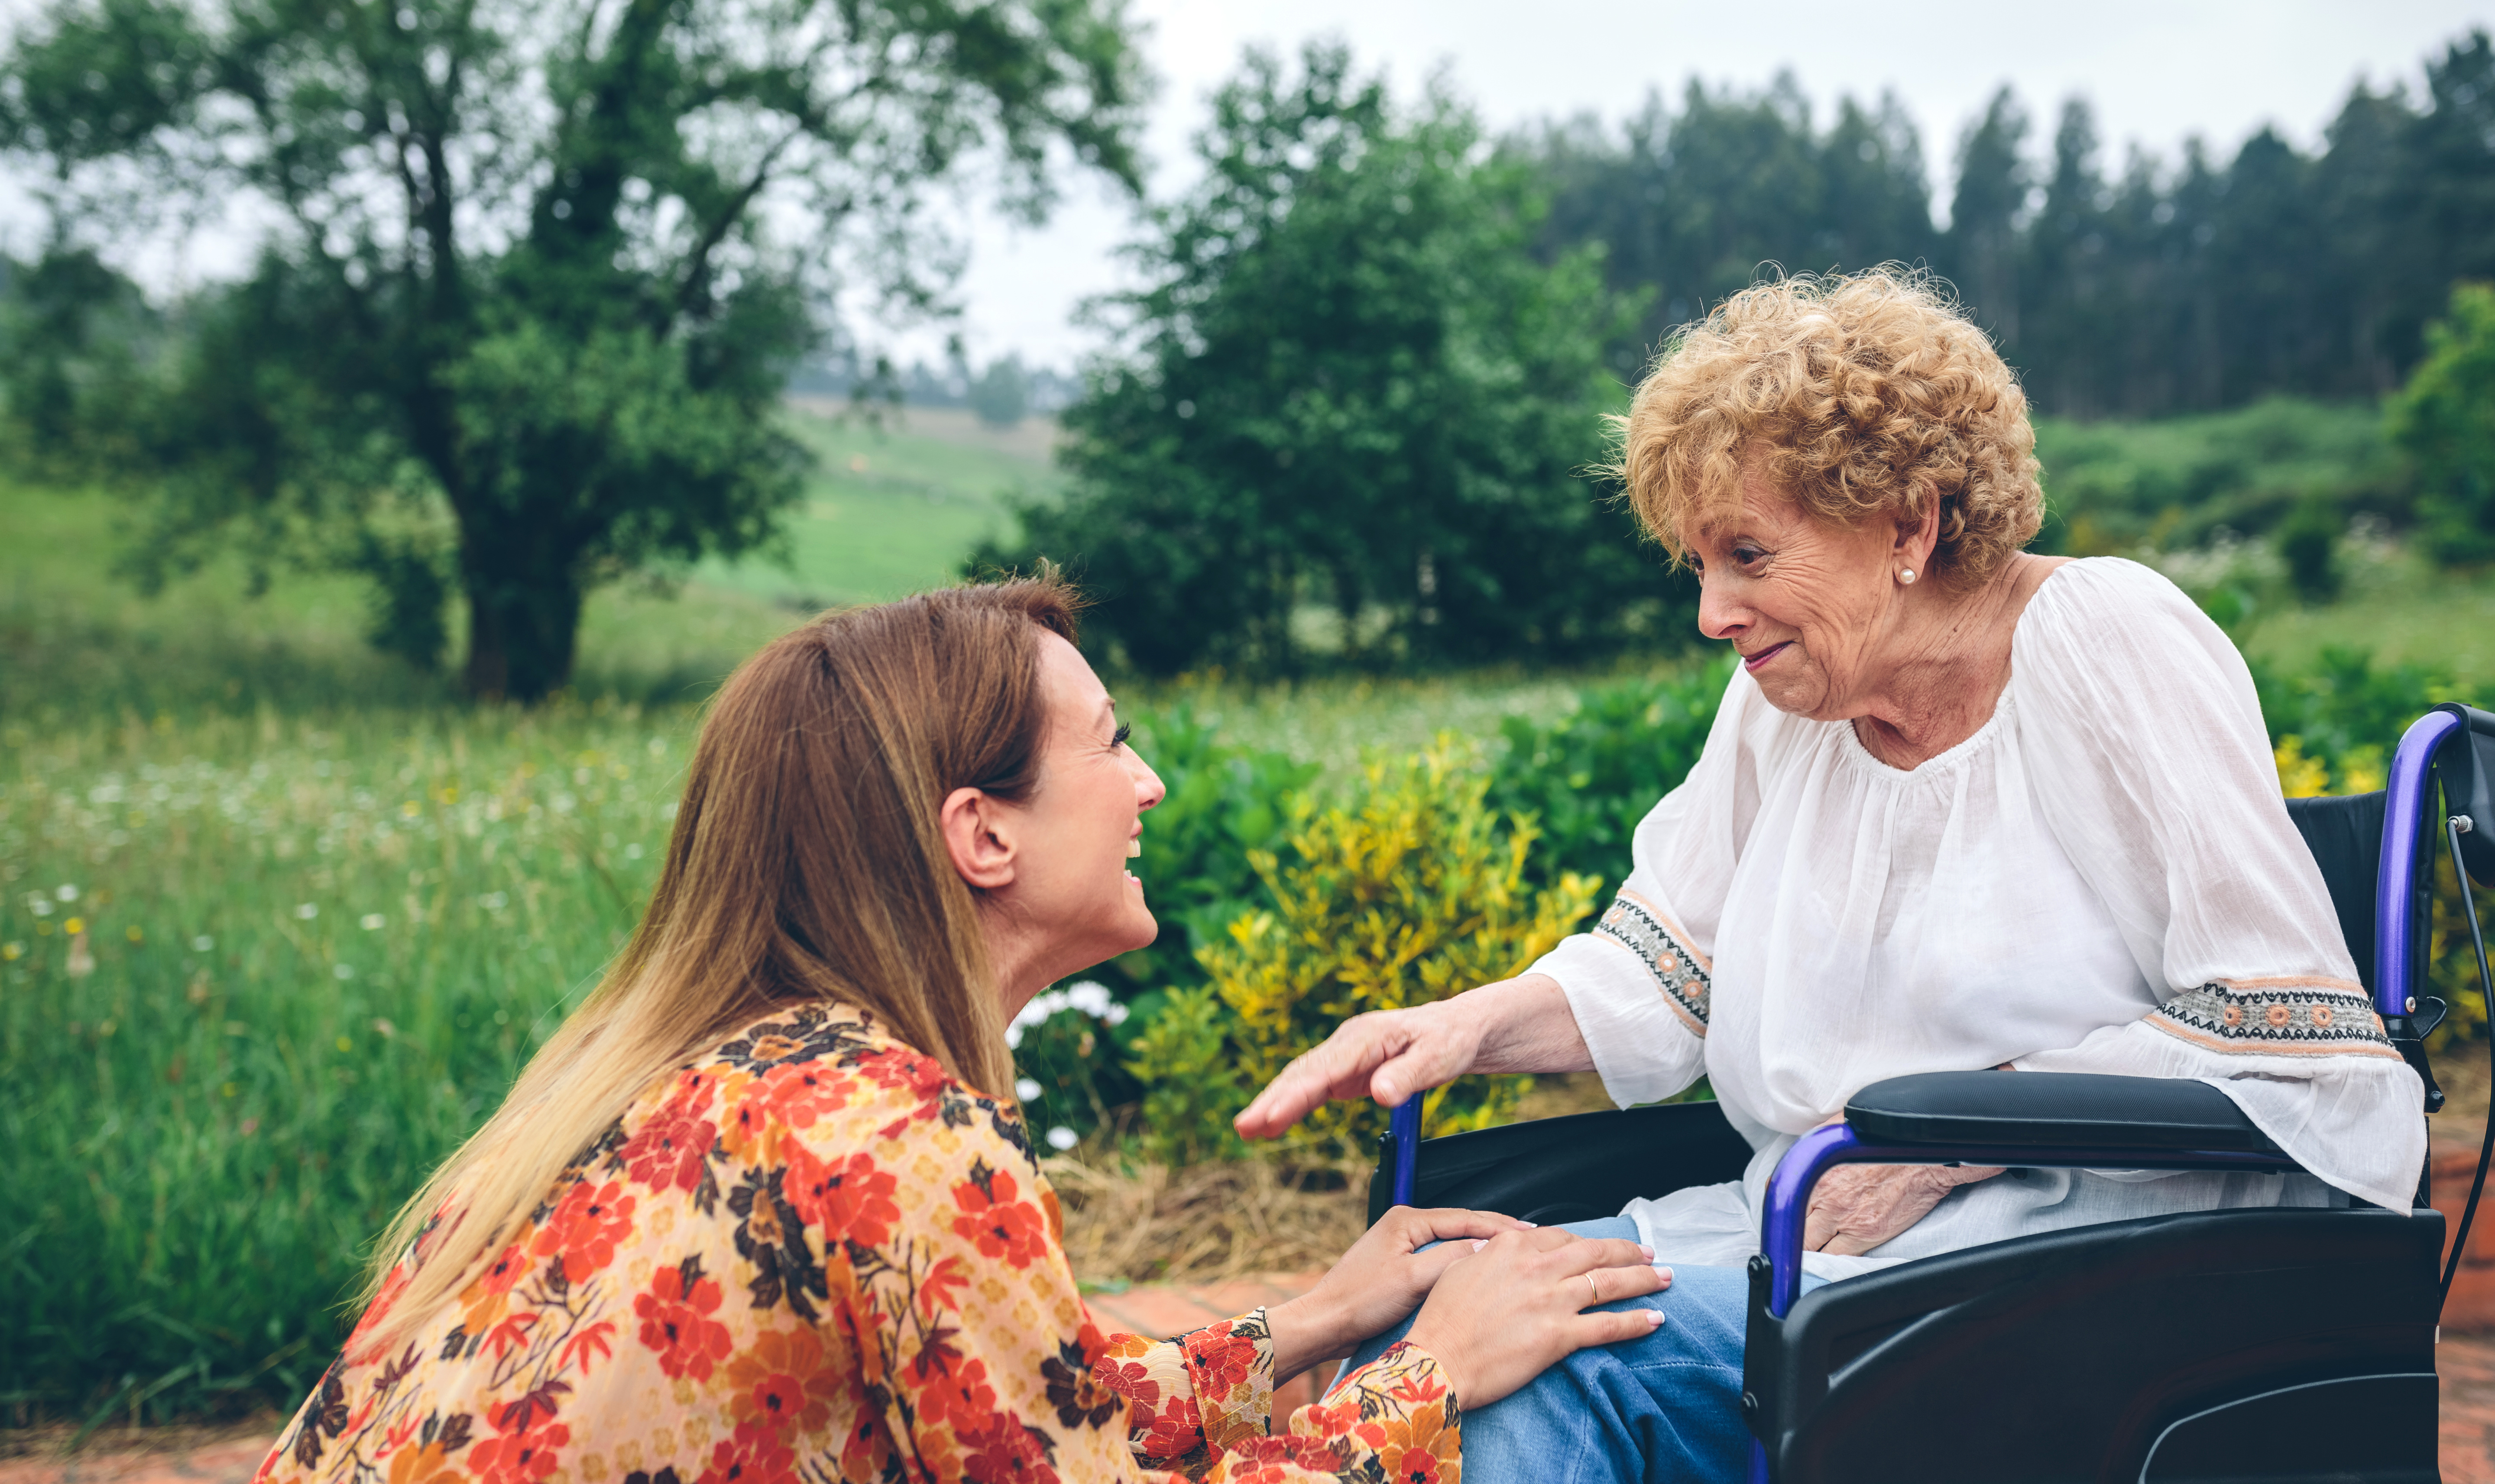 Affectionate young woman talking to elderly woman in a wheelchair in the garden